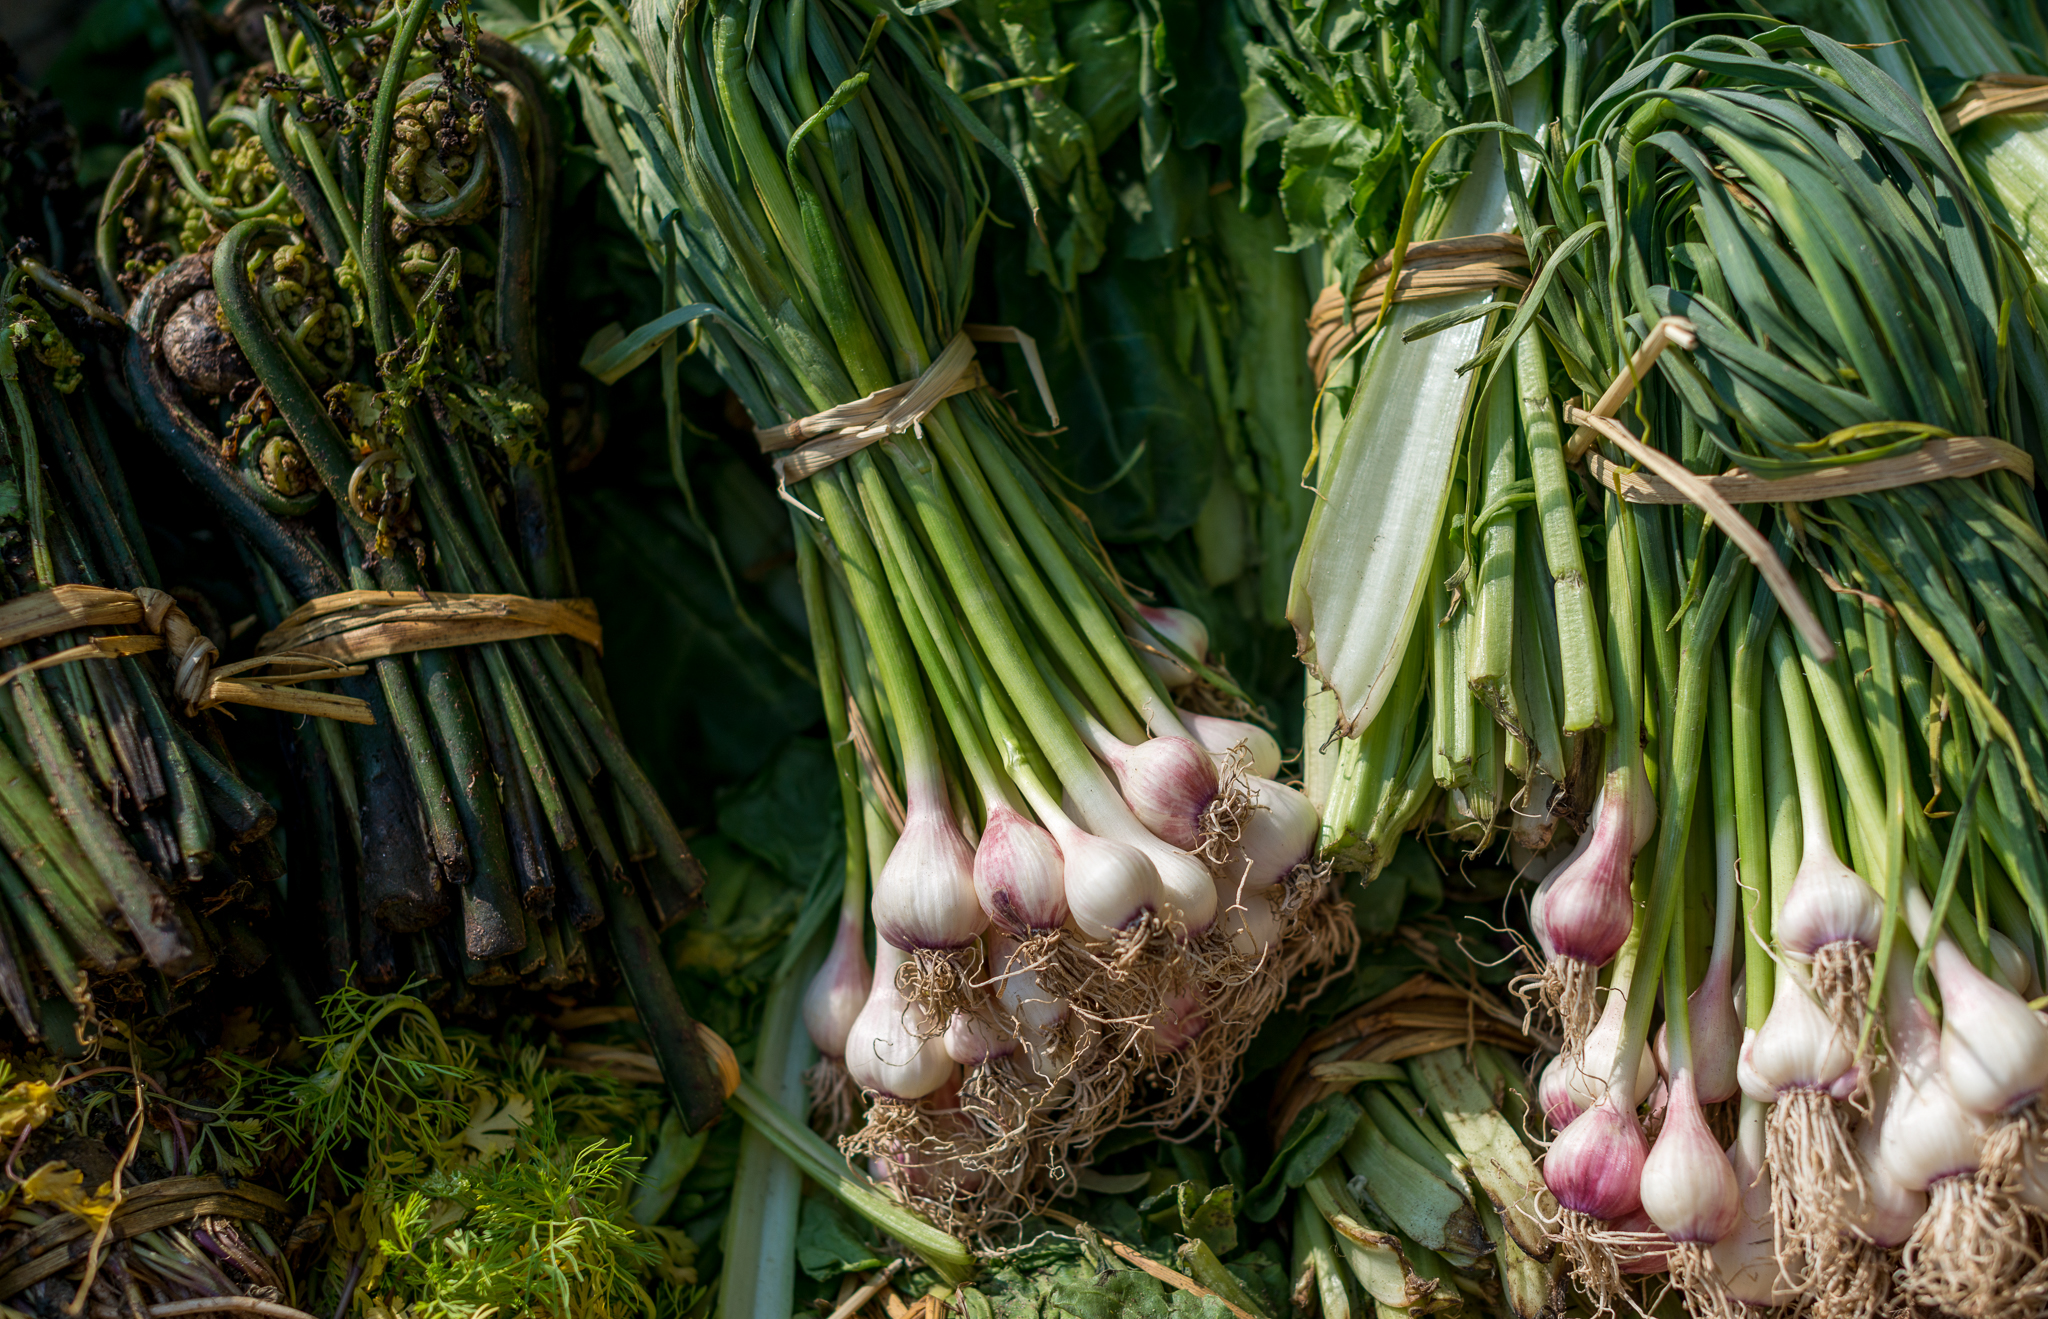 Spring onions at a local market...